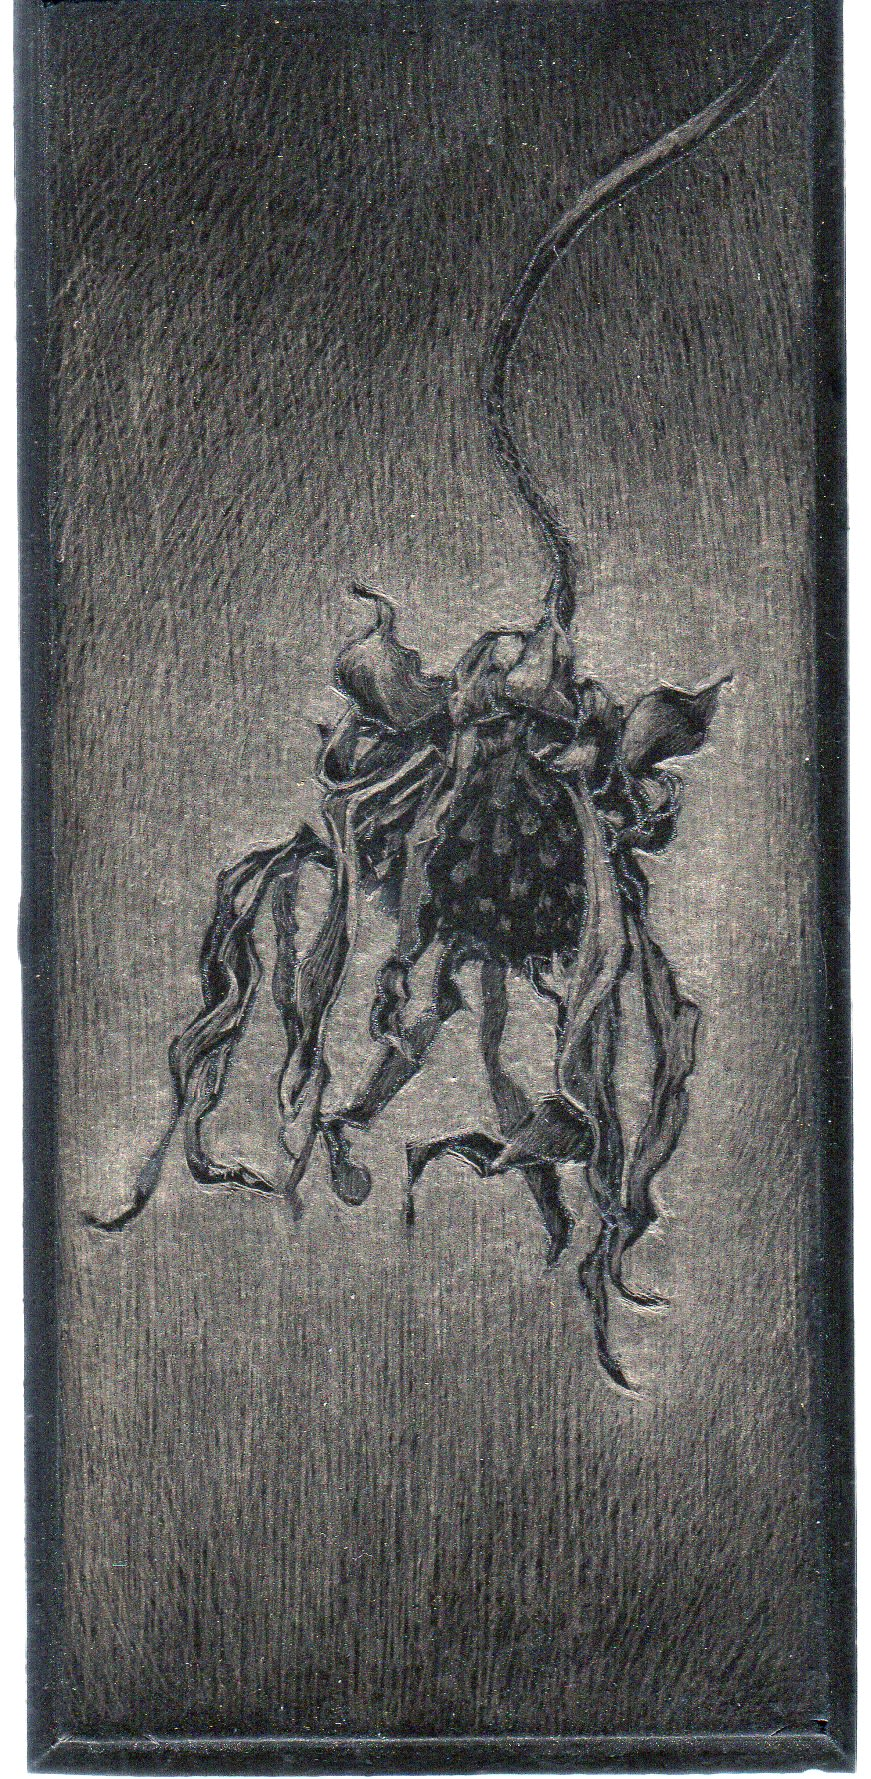 "Marjorie Williams-Smith Summer Heat, 2015 Silverpoint on black acrylic gesso 6"" x 2 ¾"""